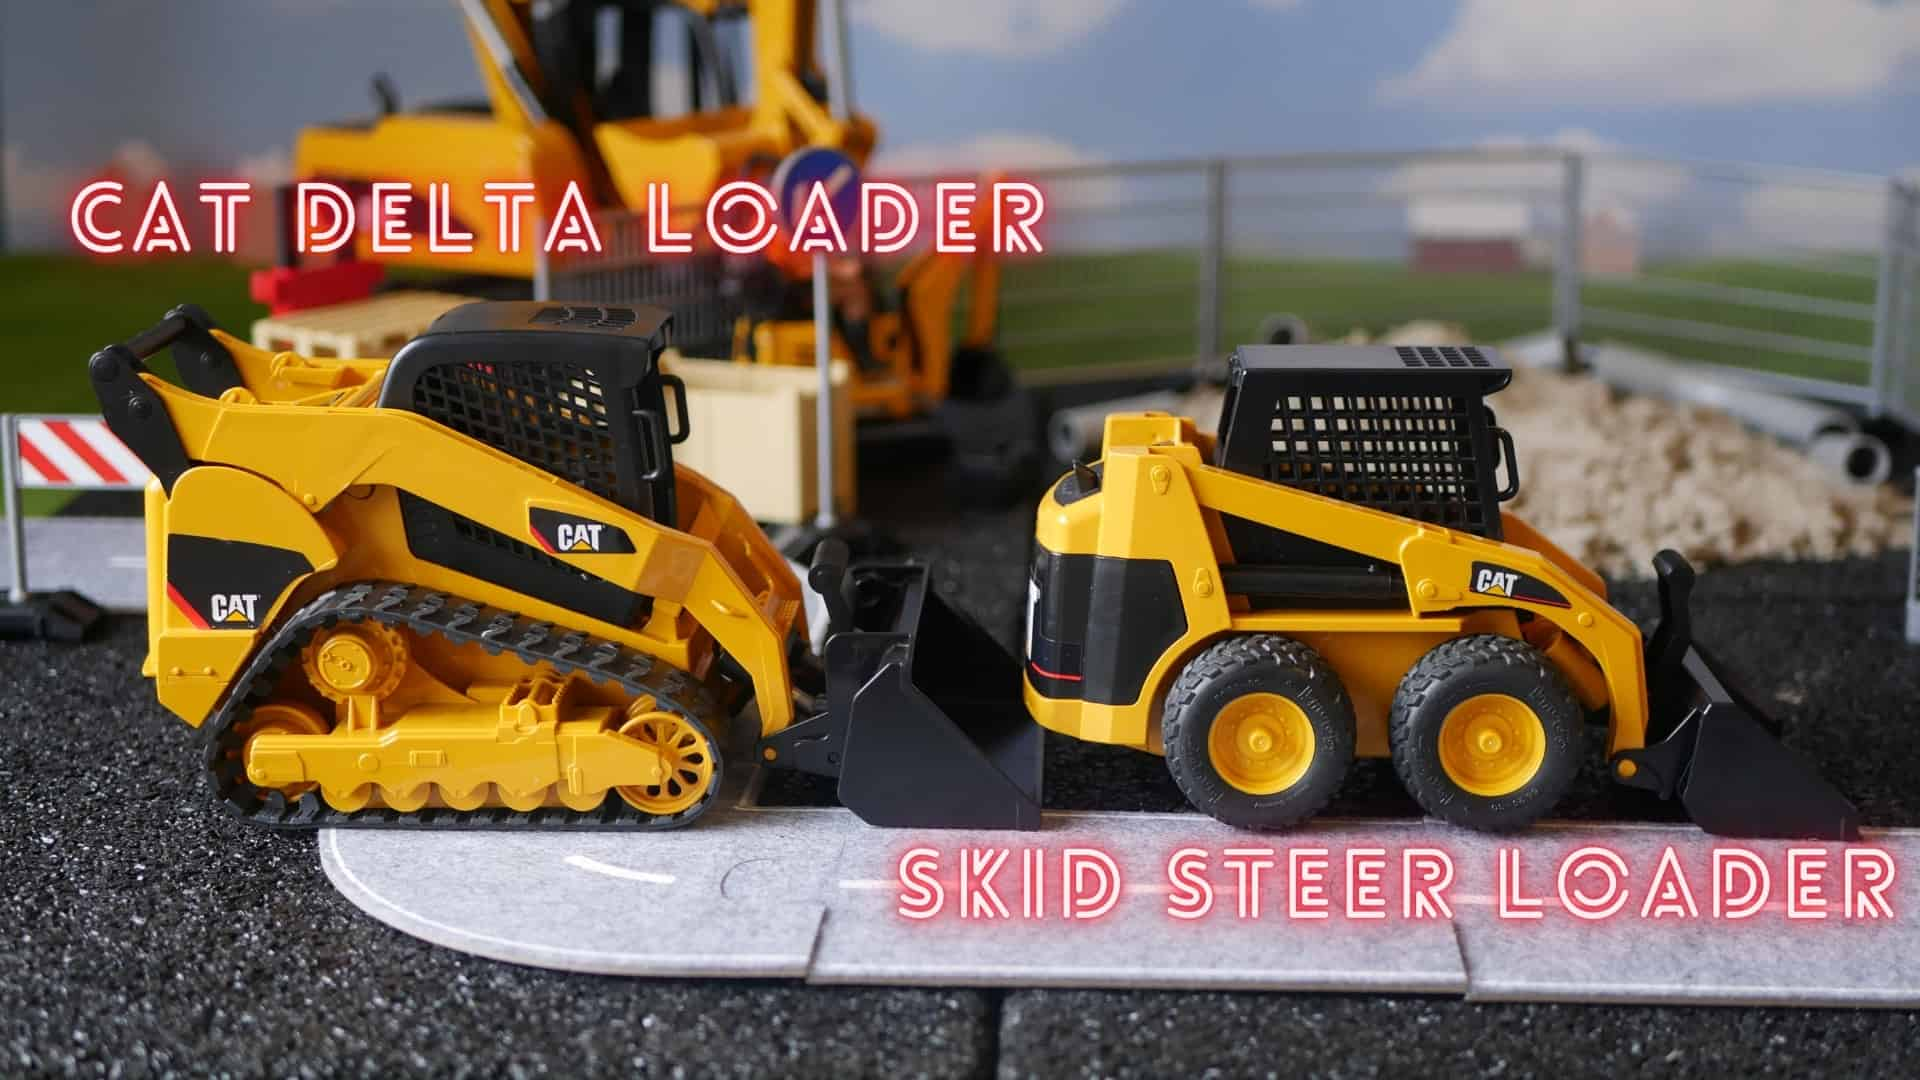 Cat delta loader vs skid steer loader